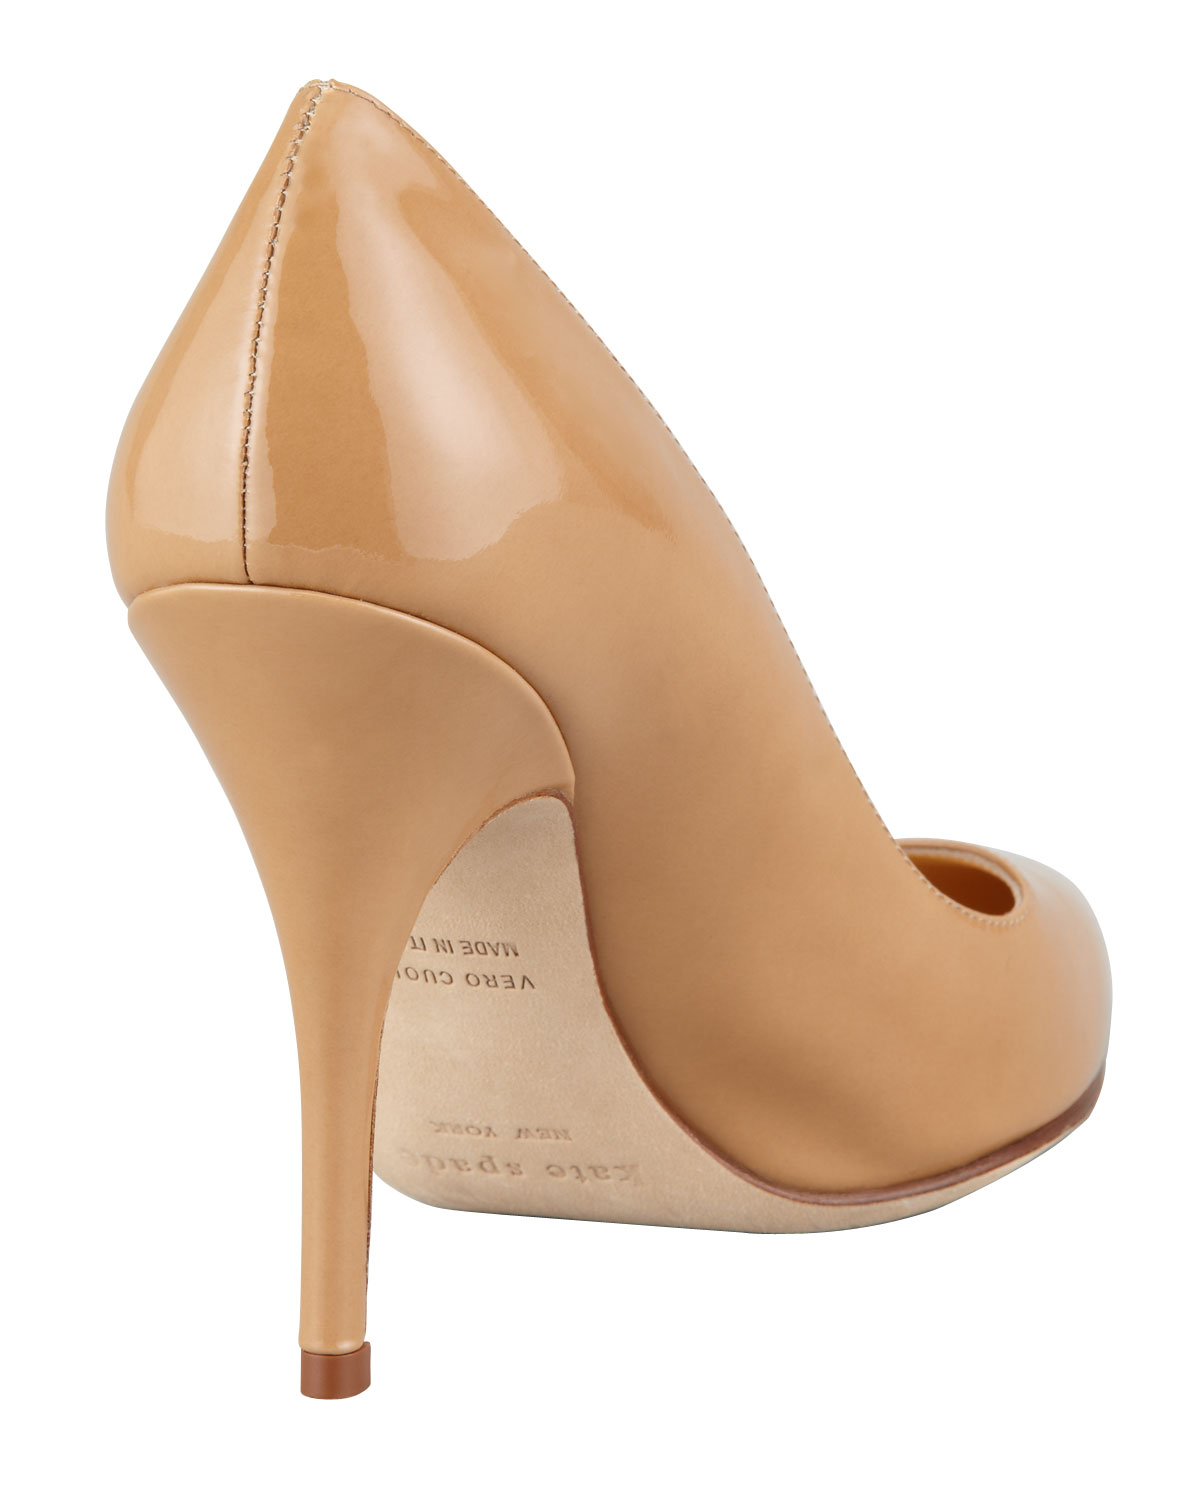 Kate spade new york Licorice Patent Pointedtoe Pump Camel in ...